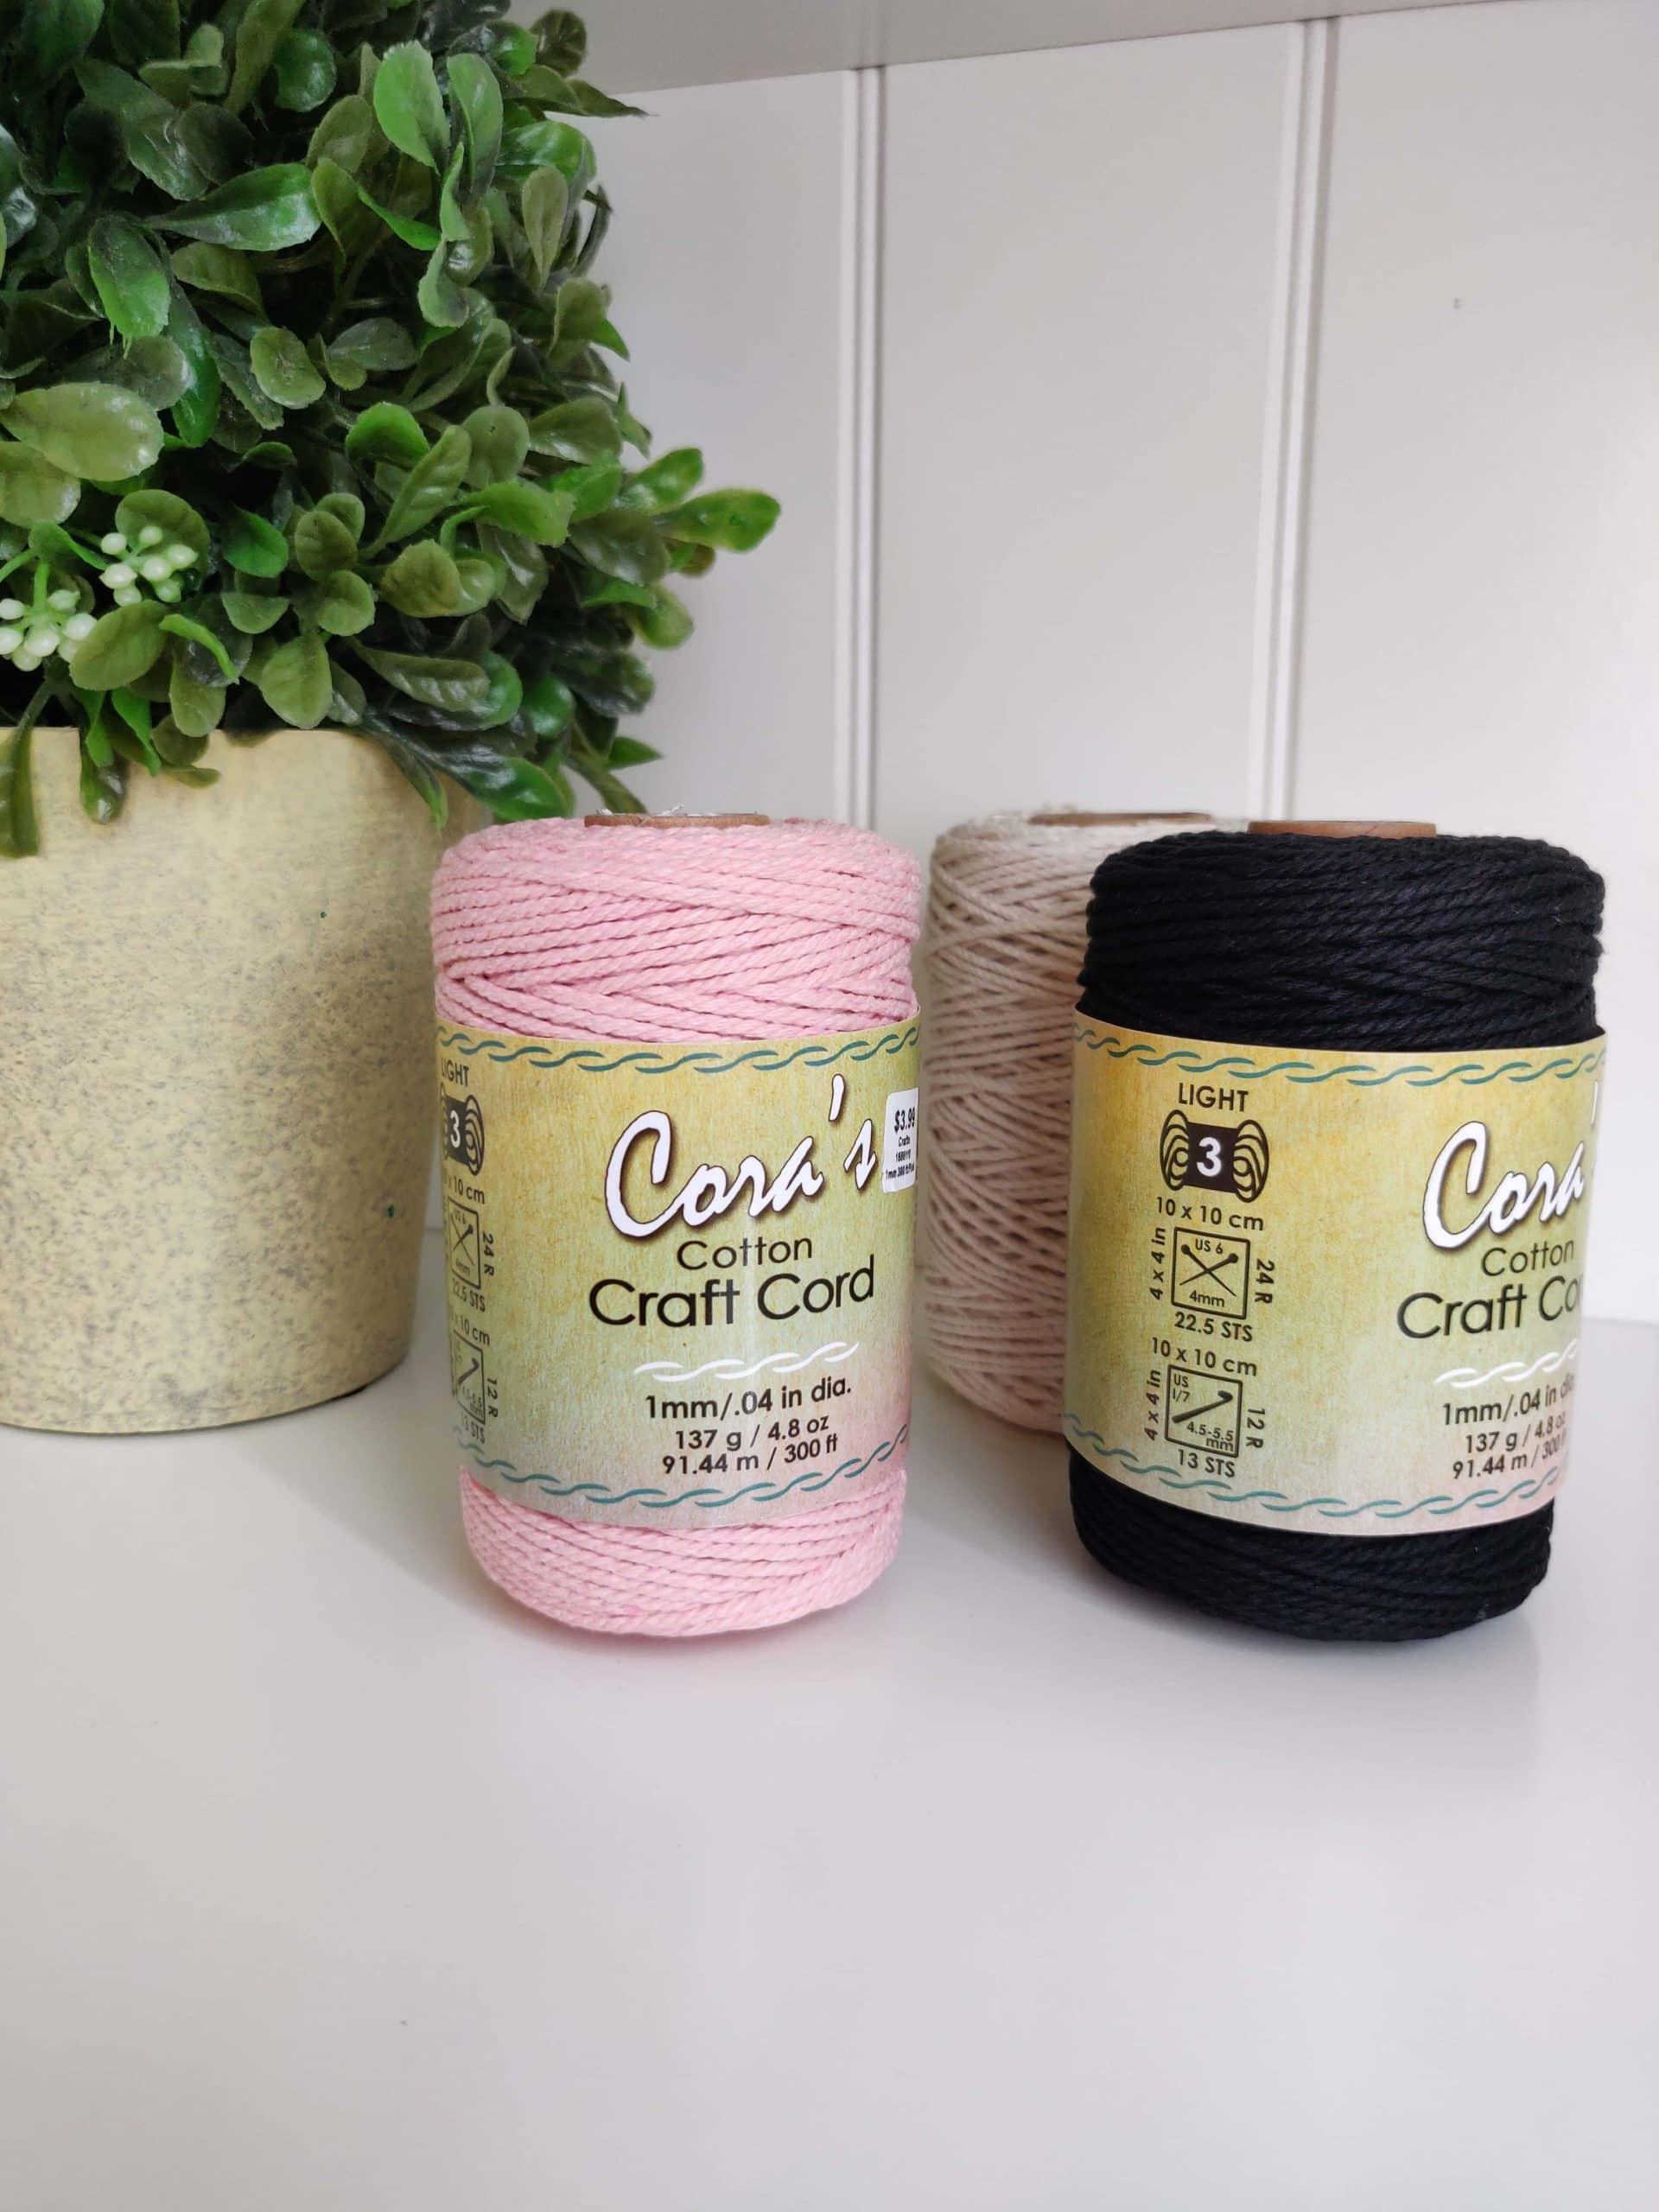 Black, pink, and natural cotton cord